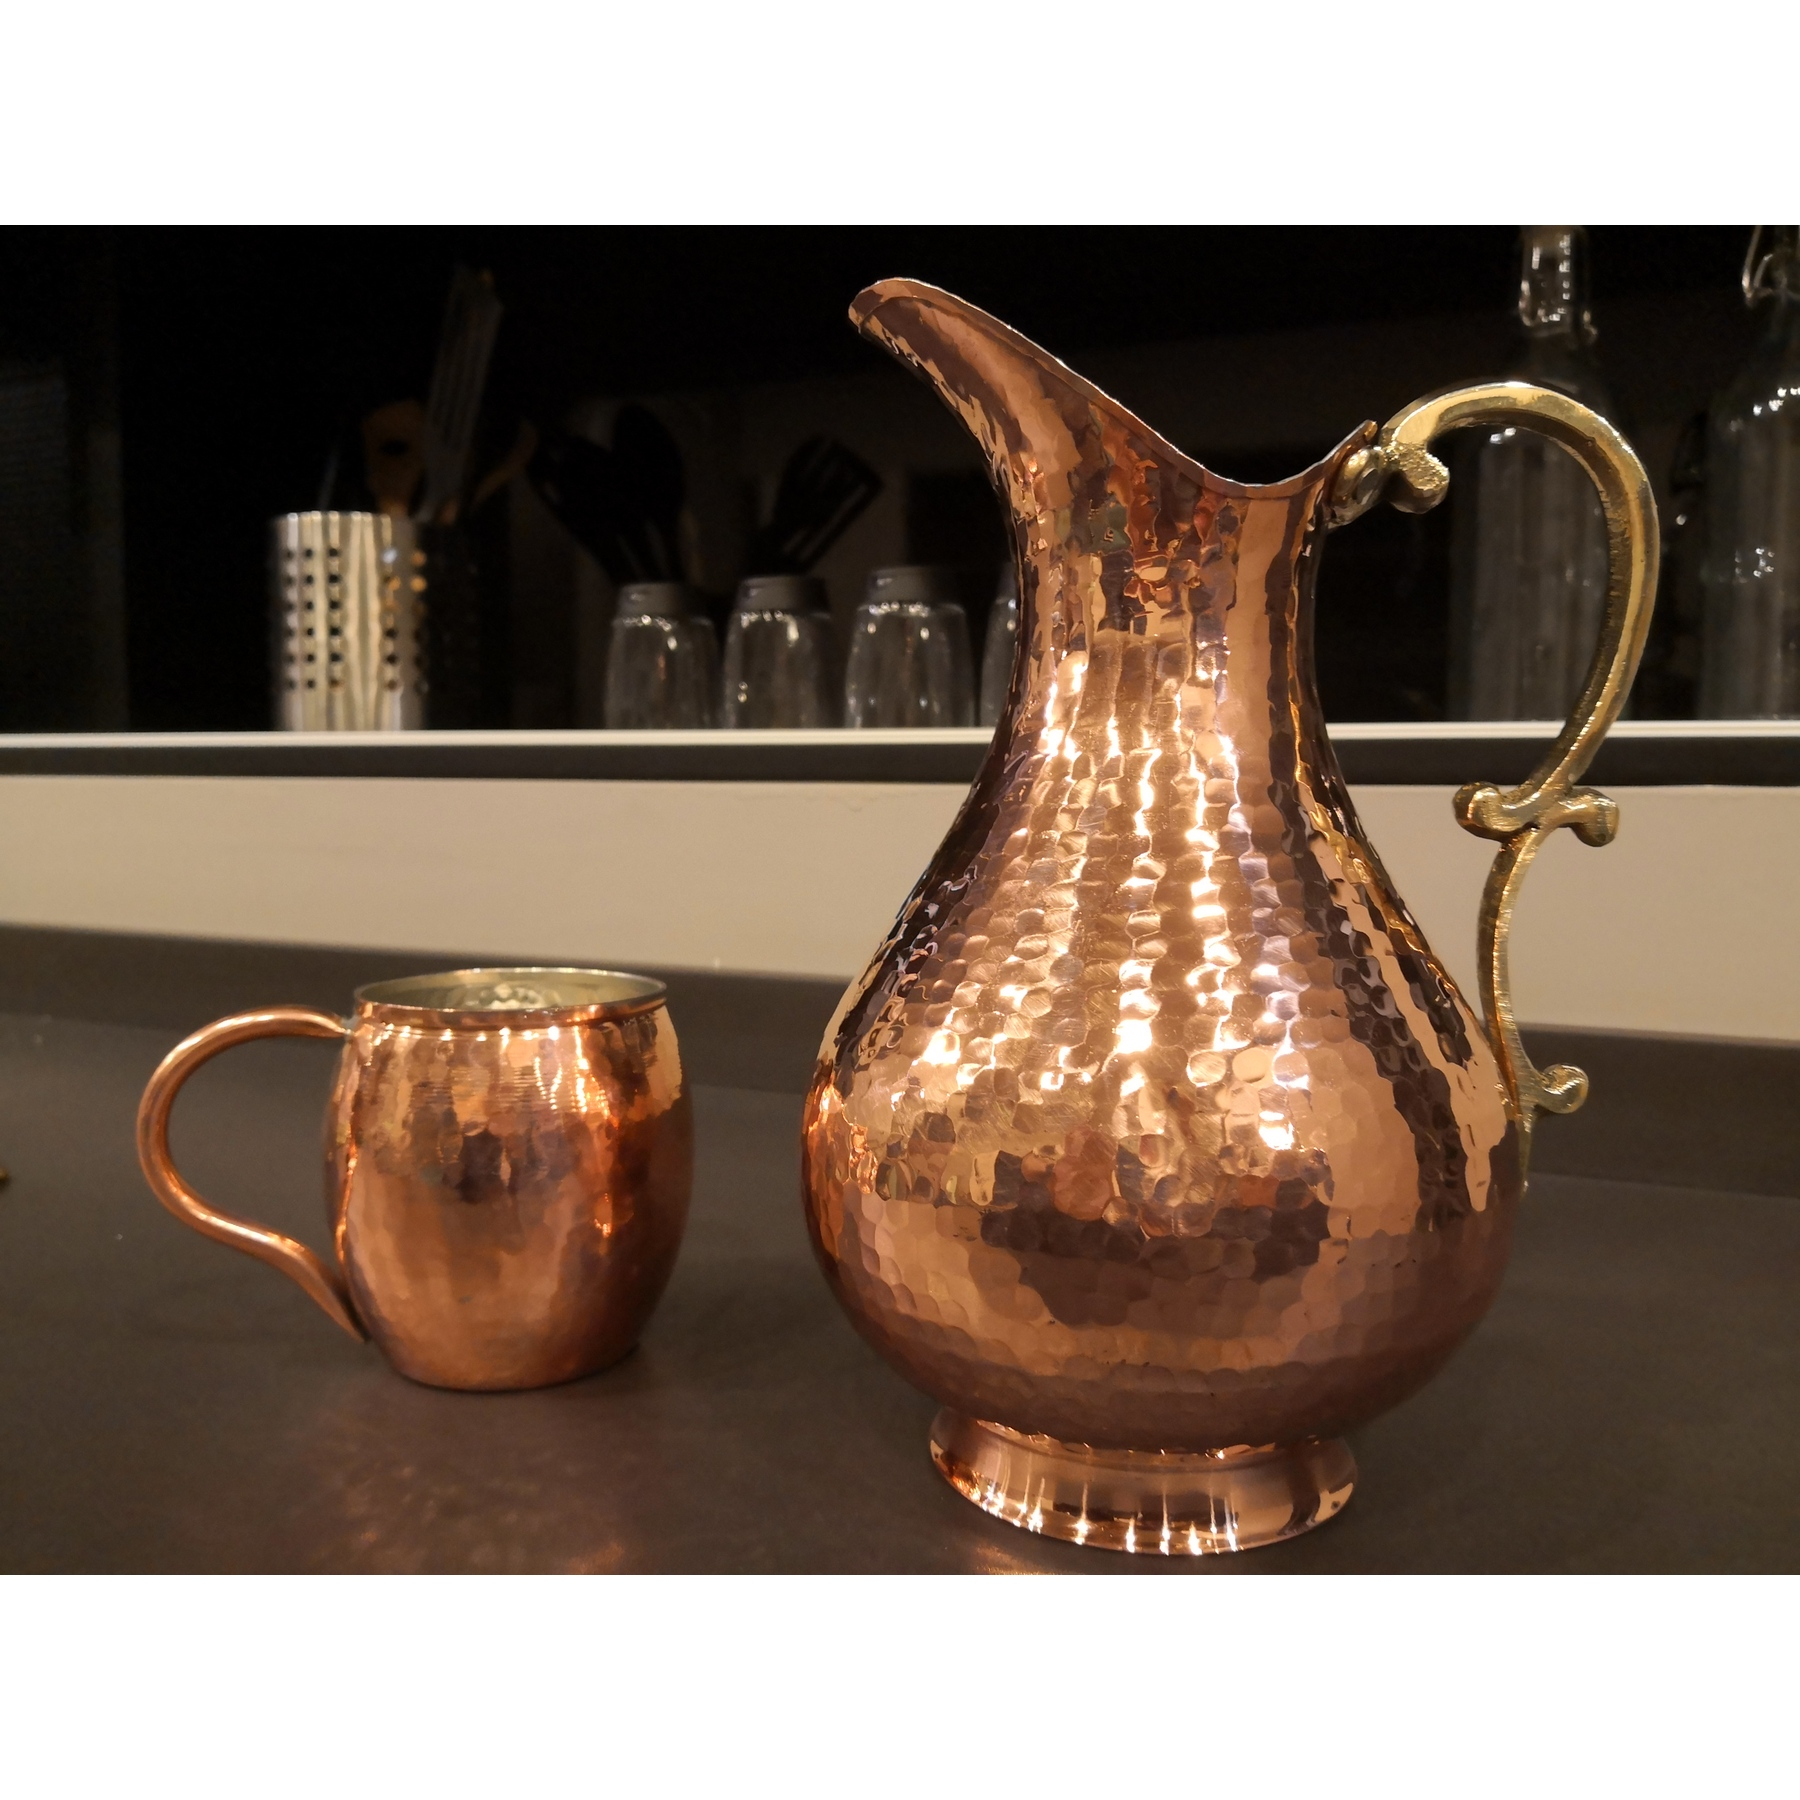 2 Lt (70 Fl Oz) Copper Turkish Water Pitcher Large And Glass Water Jug   Pure Copper Pitcher Carafe Hand Made  MADE IN TURKEY